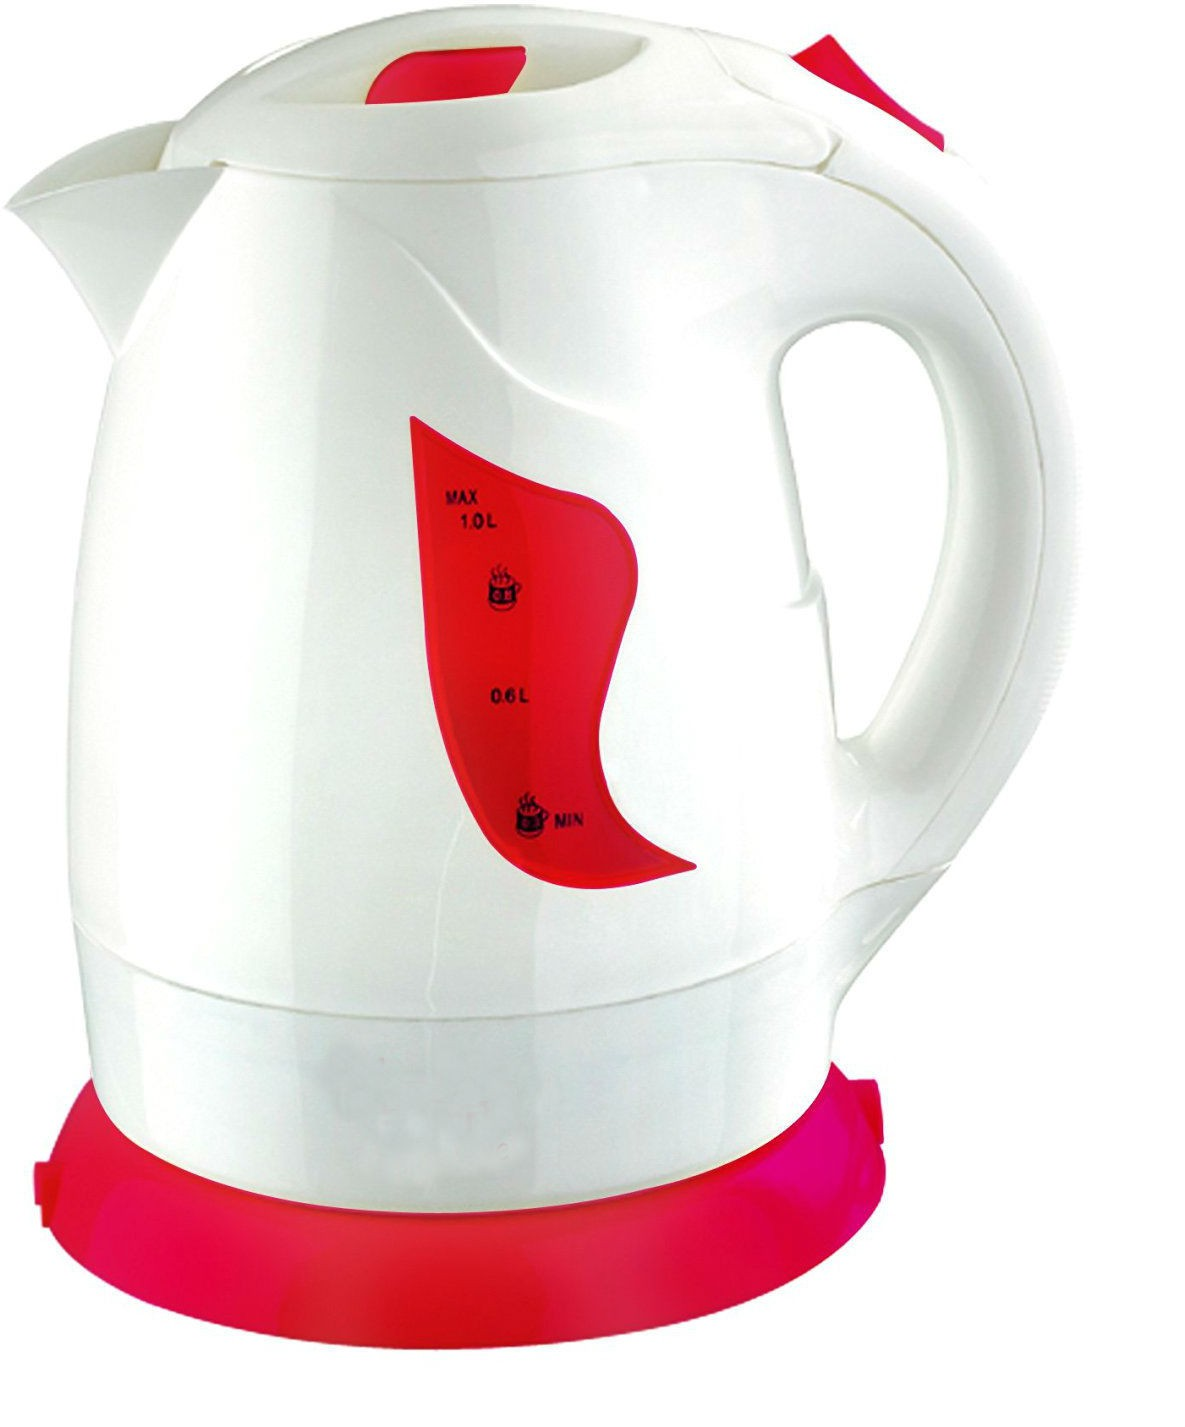 Shrih SH - 02649 Red Concealed Element 1 Litre Electric Kettle(1 L, Red And White)